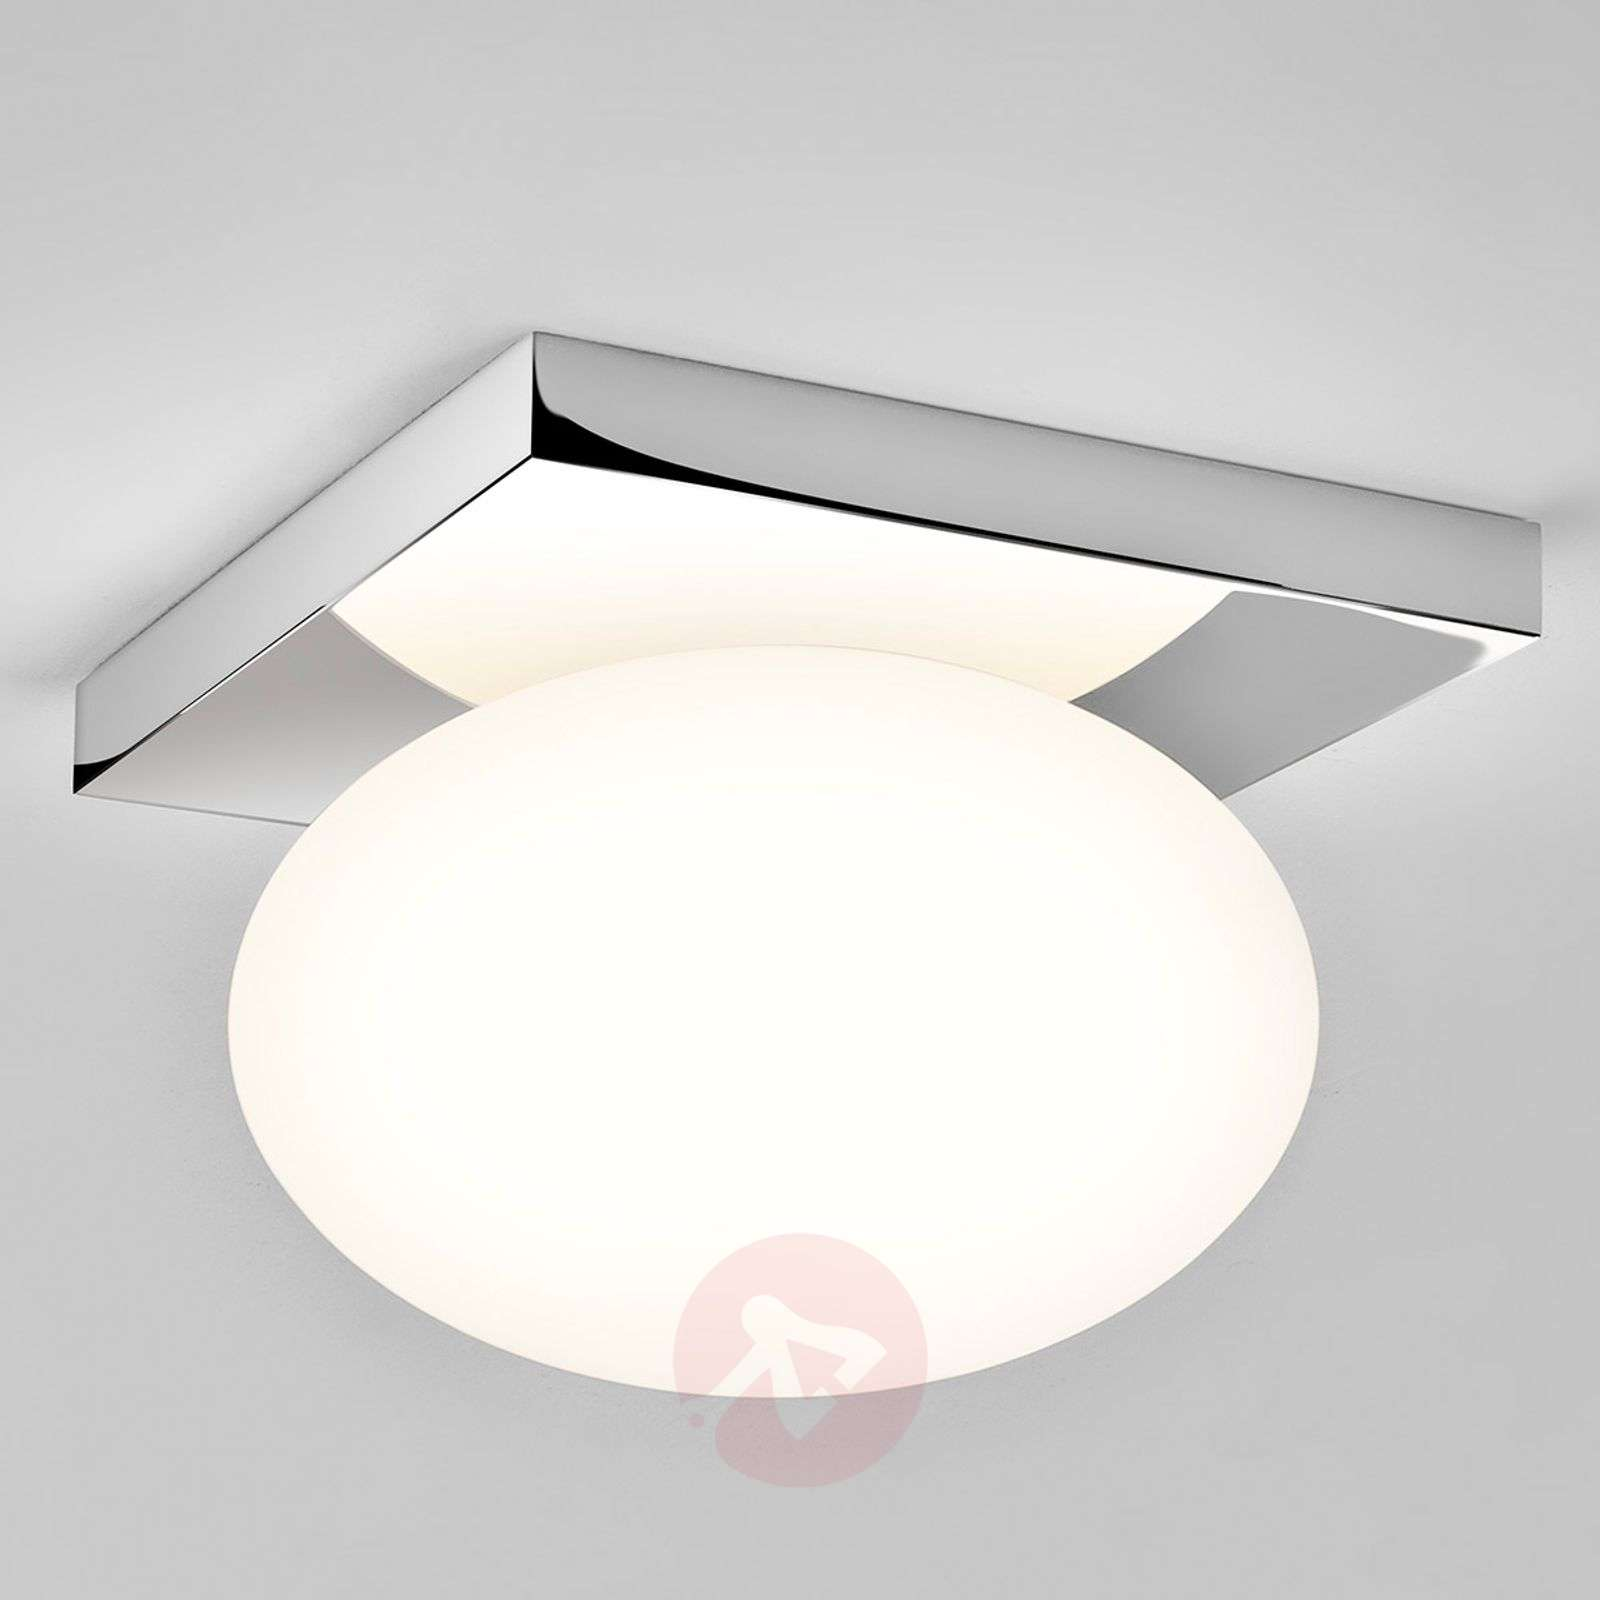 Castiro Ceiling Light Unusual-1020393-02